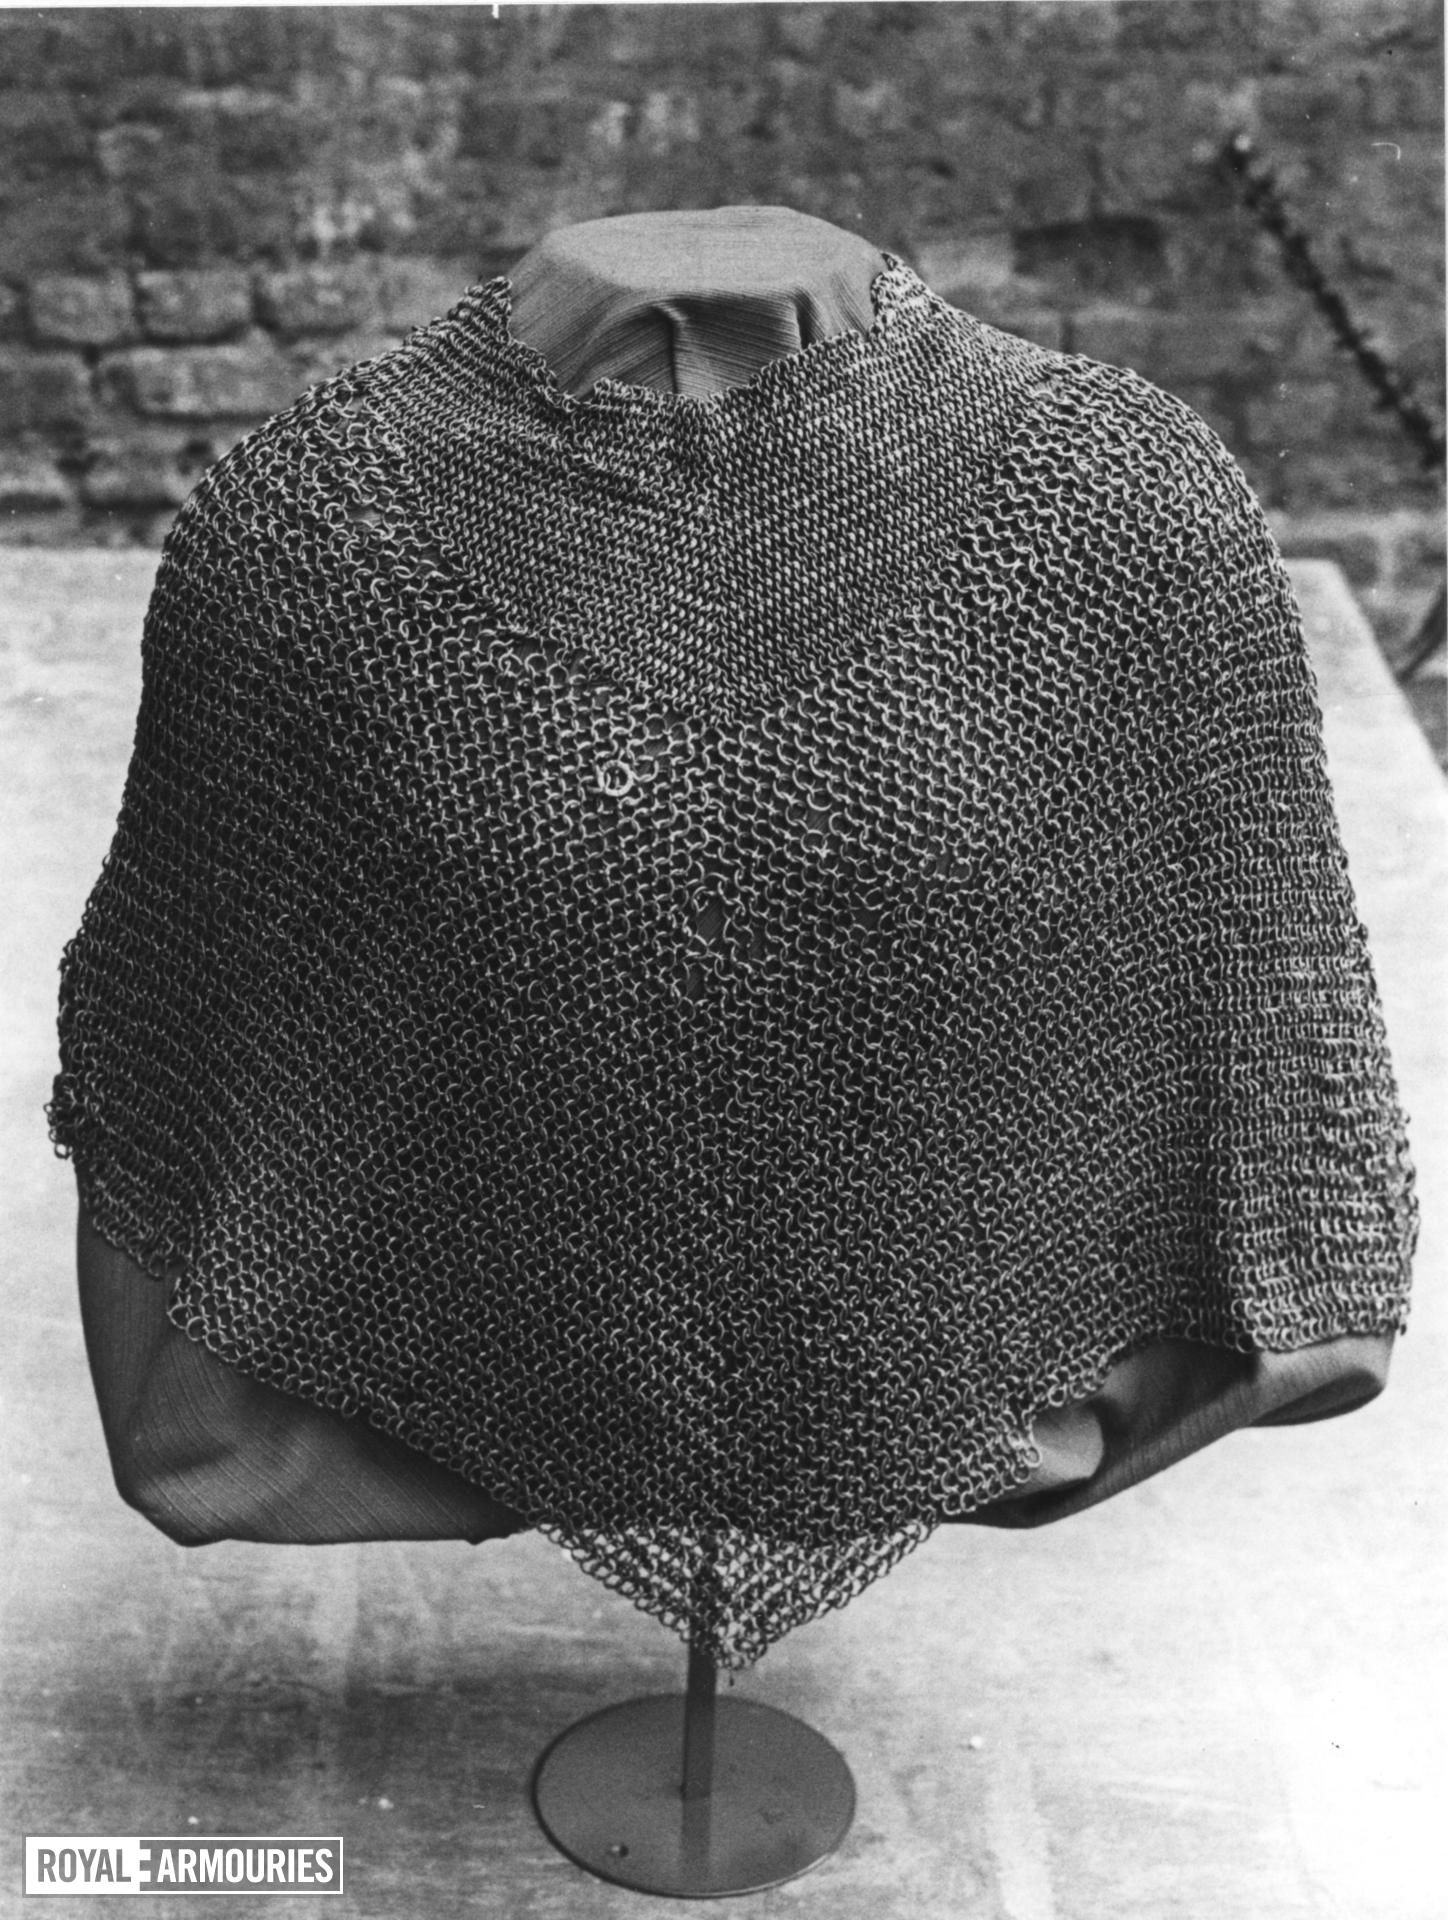 Mail cape. German, 15th century (III.14)